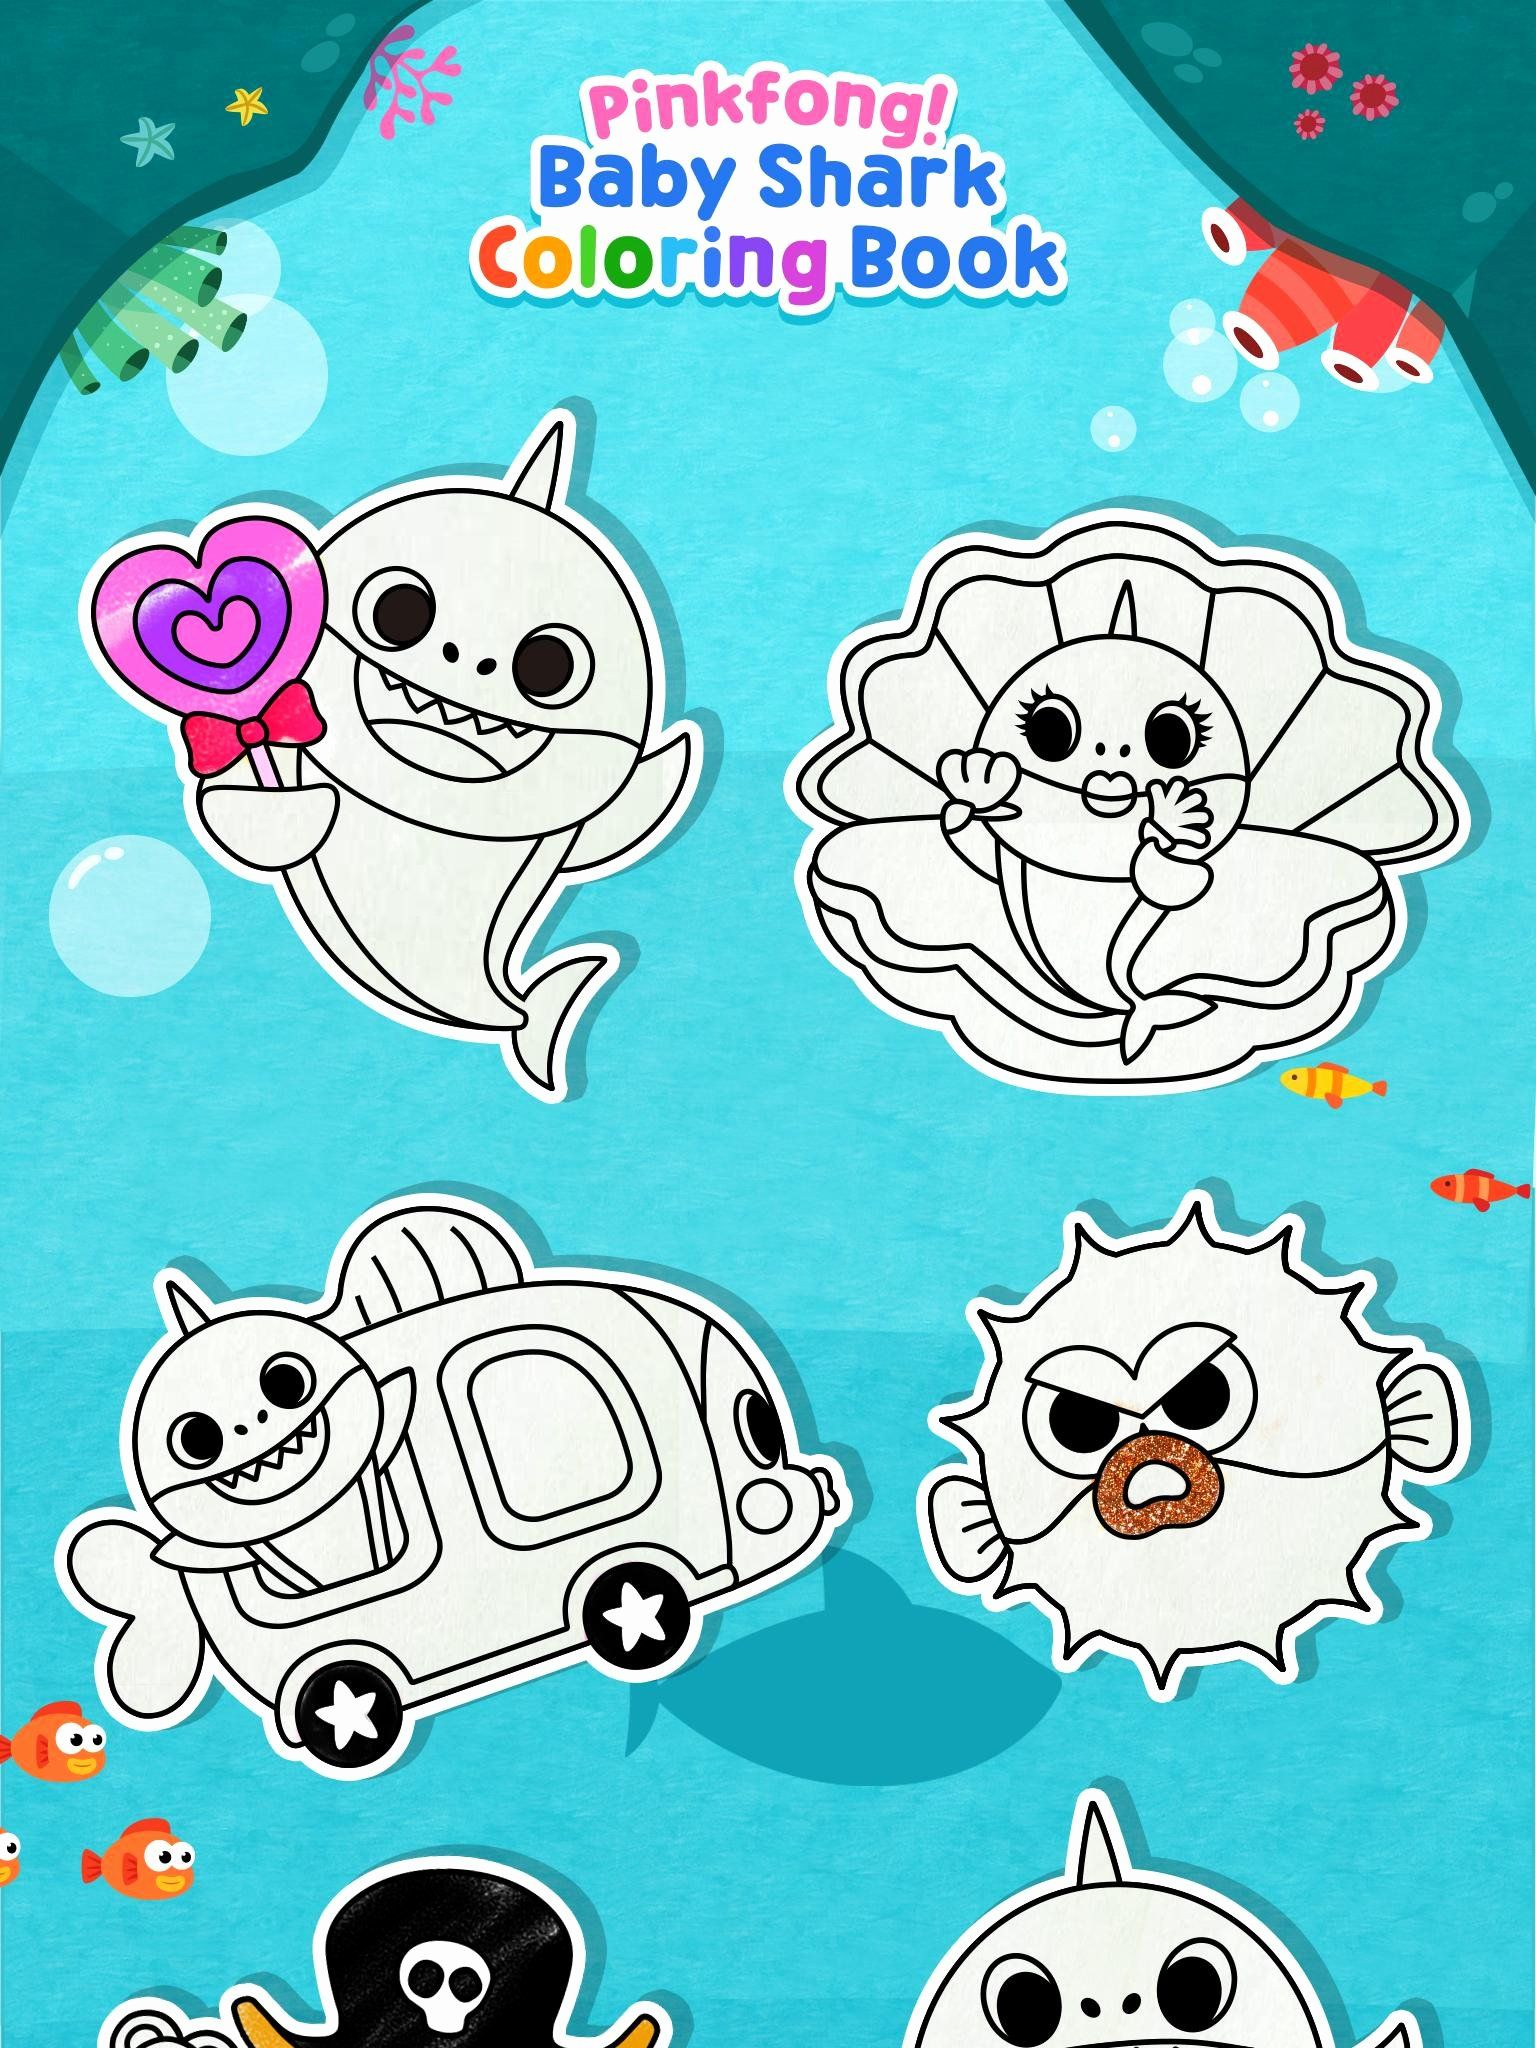 Baby Shark Coloring Page Lovely Pinkfong Baby Shark